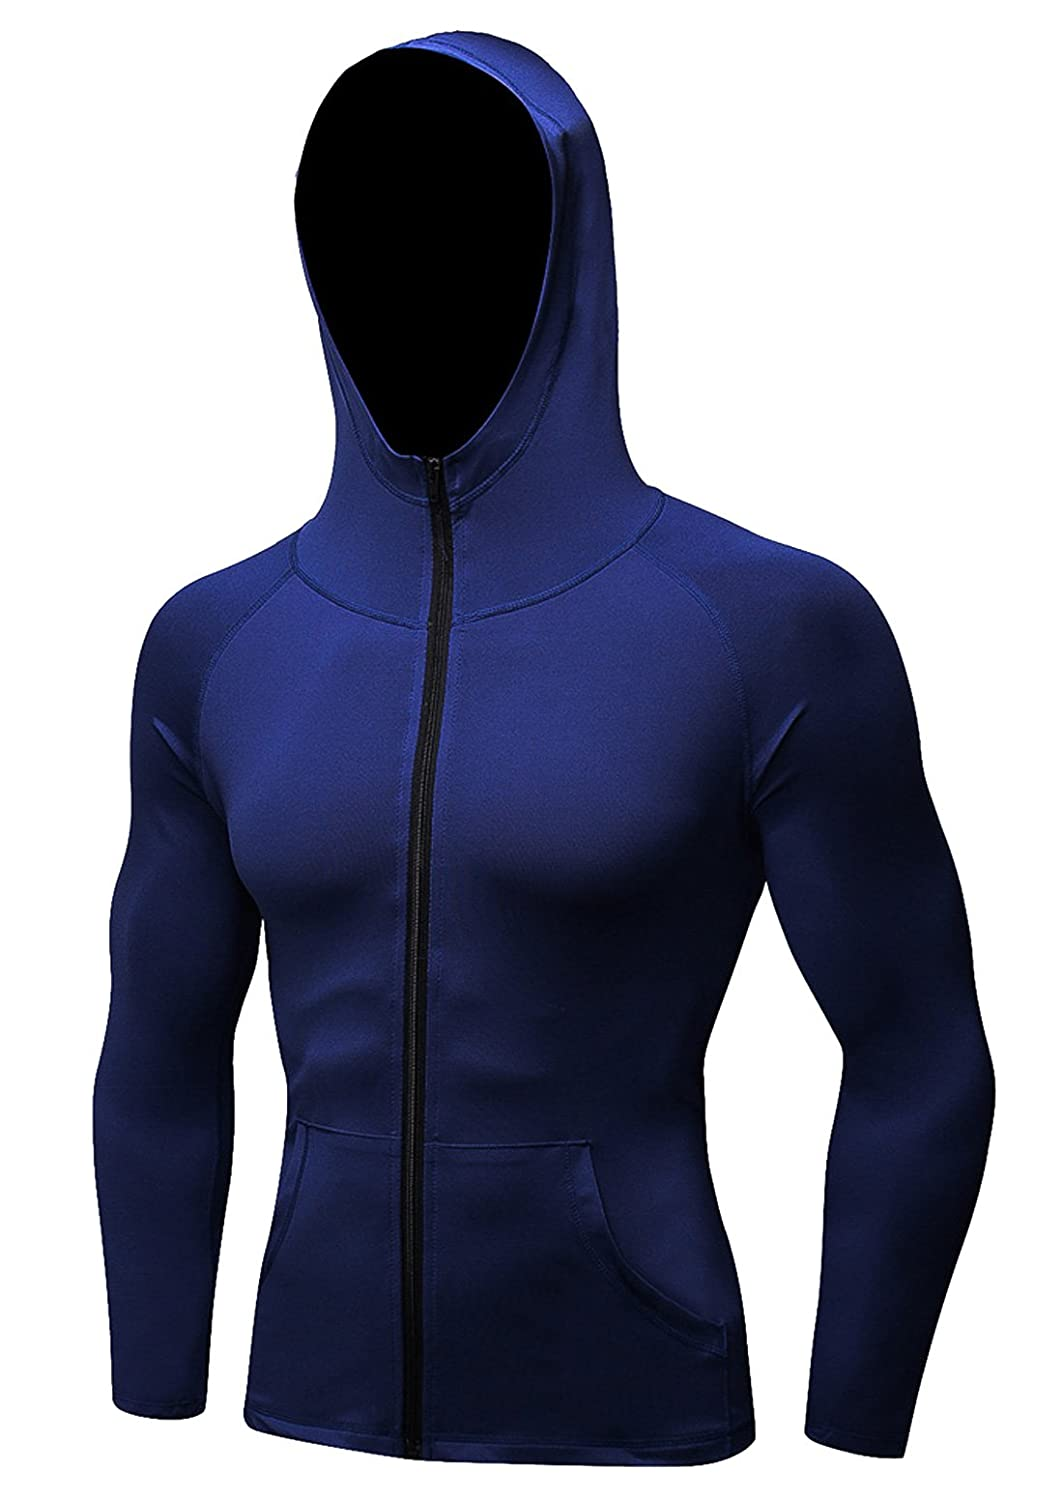 Panegy Men's Compression Hoodies Quick-Dry Lightweight Fitted Running Sweatshirt